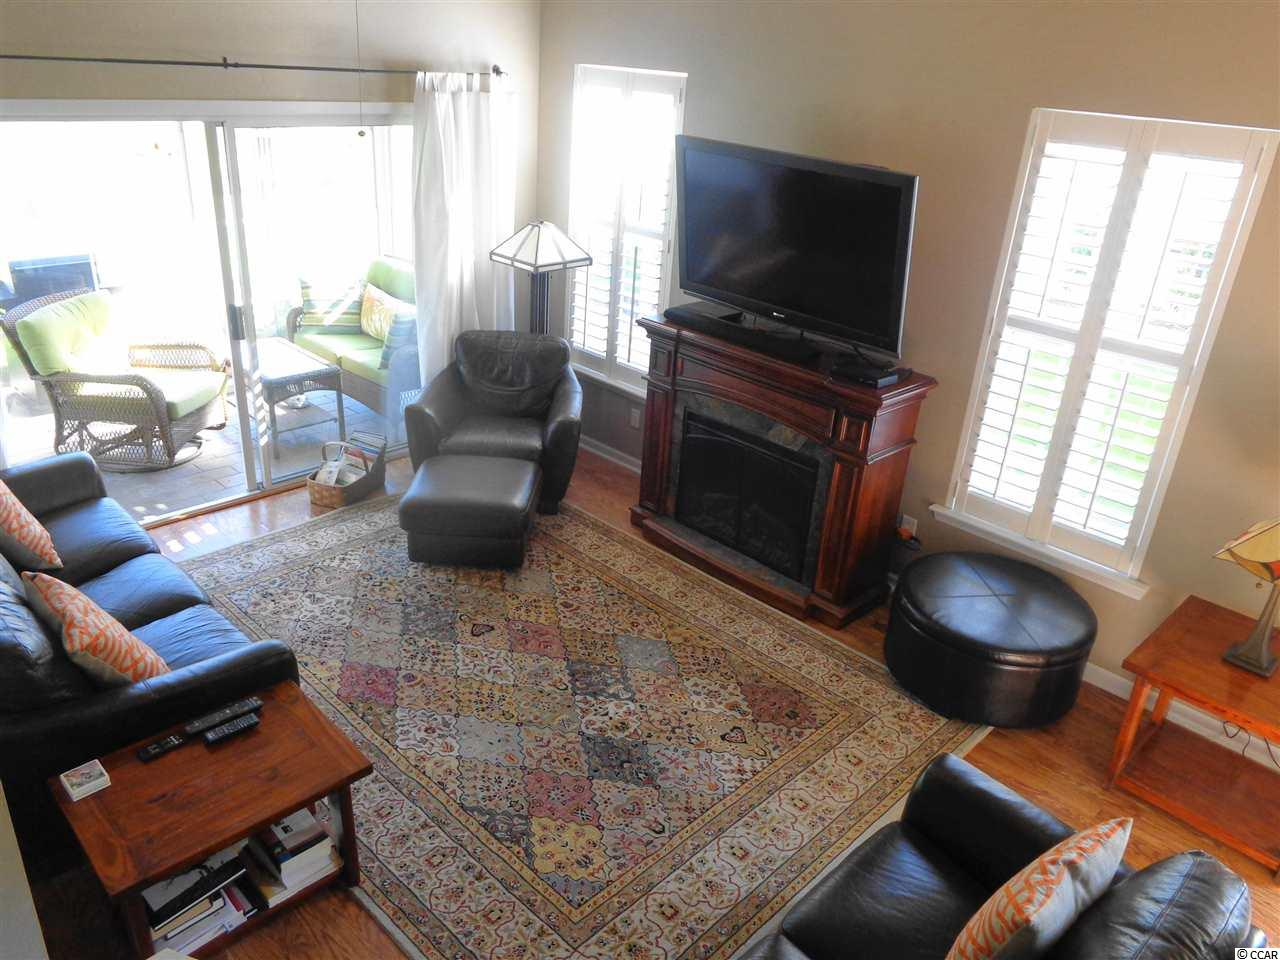 Have you seen this  ST ANDREWS TOWNHOMES property for sale in Myrtle Beach